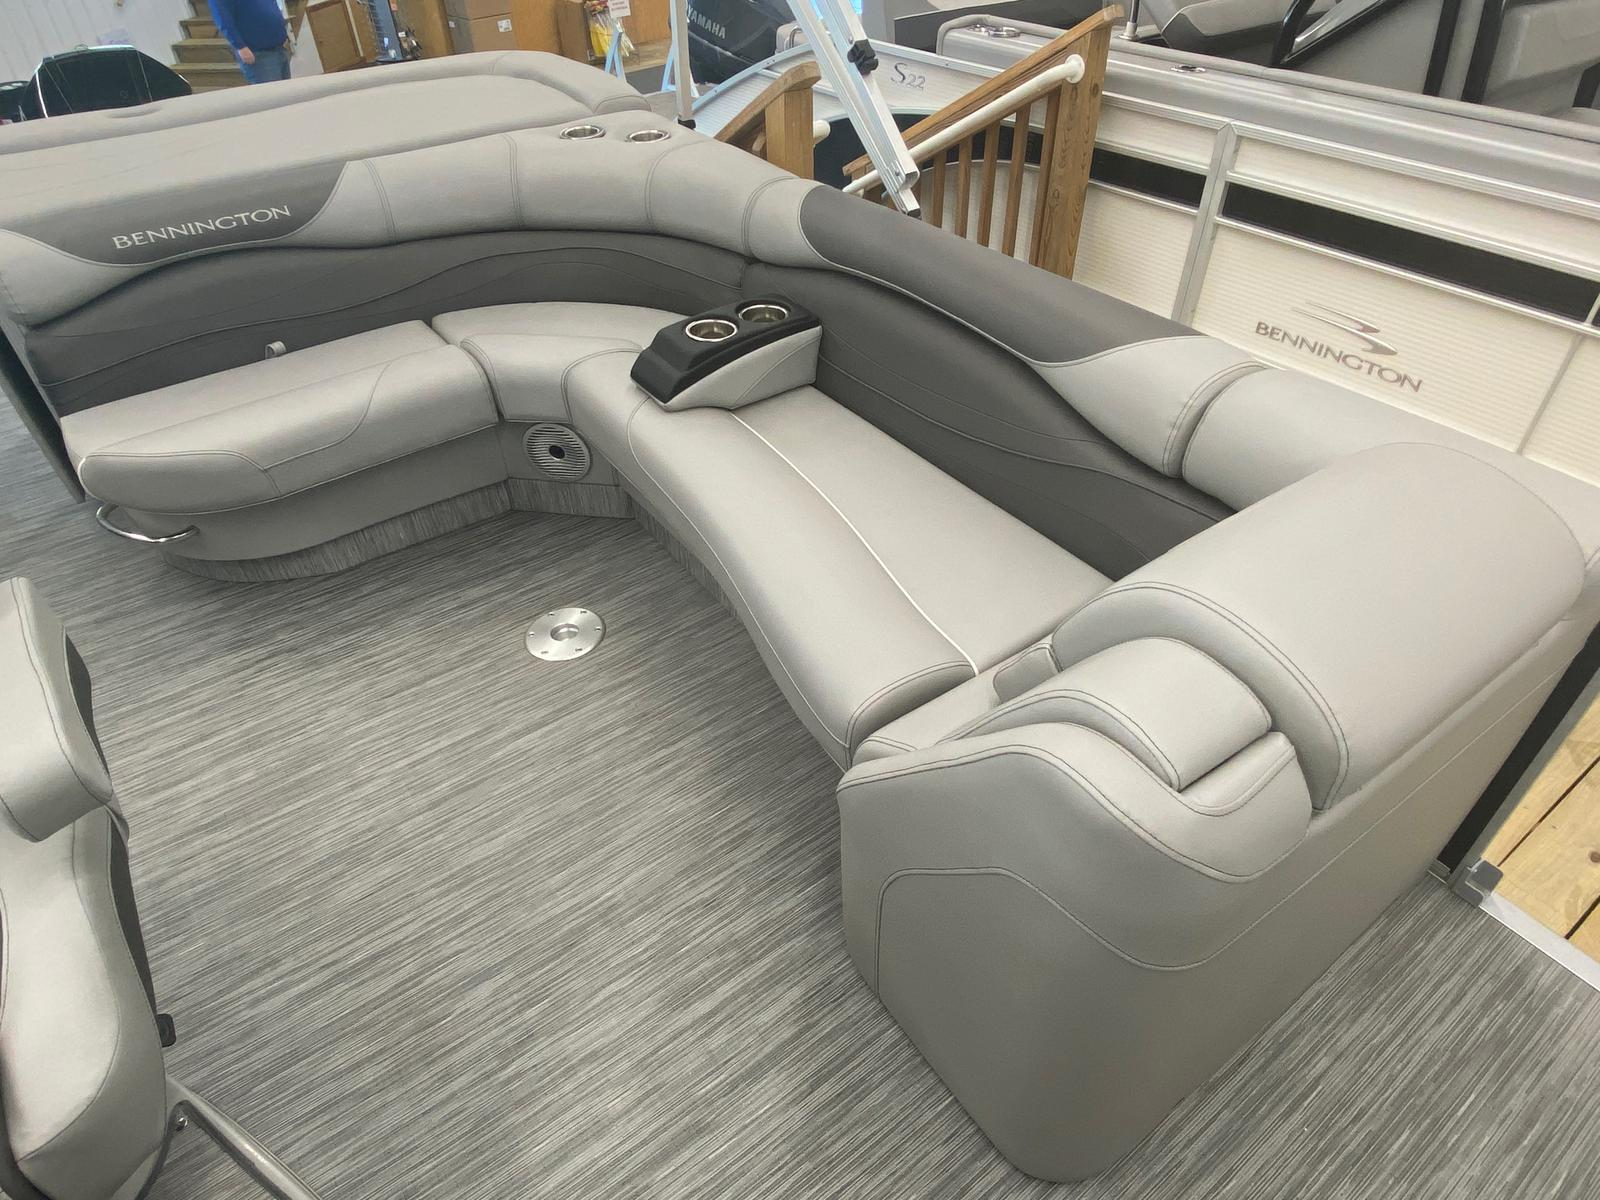 2021 Bennington boat for sale, model of the boat is 25 RL Tri-Toon ESP Performance Package & Image # 8 of 16